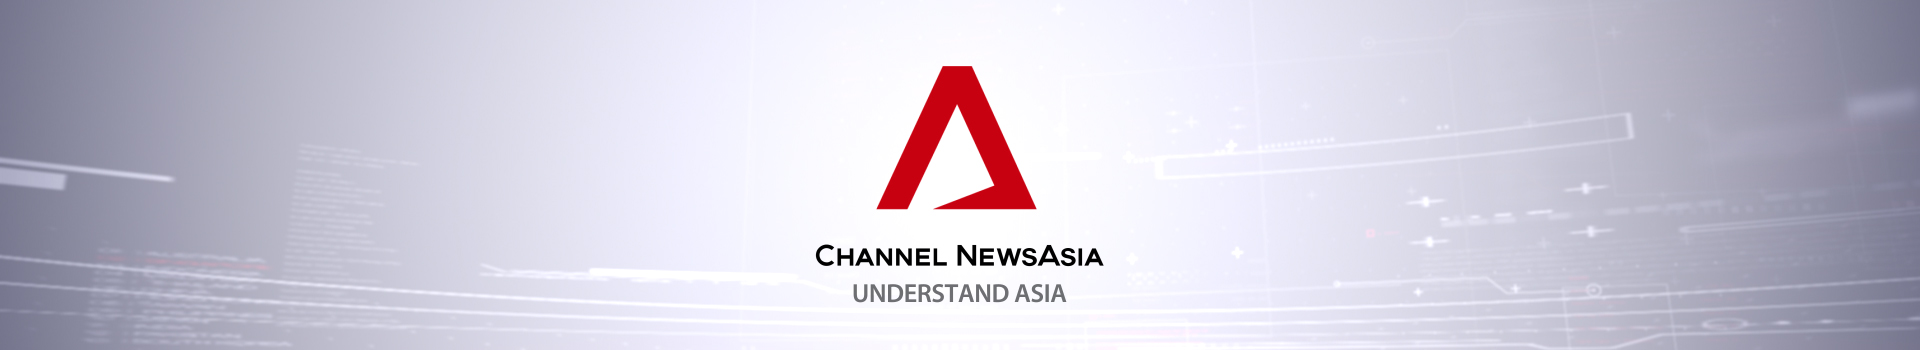 CIGNAL TV - Channel NewsAsia